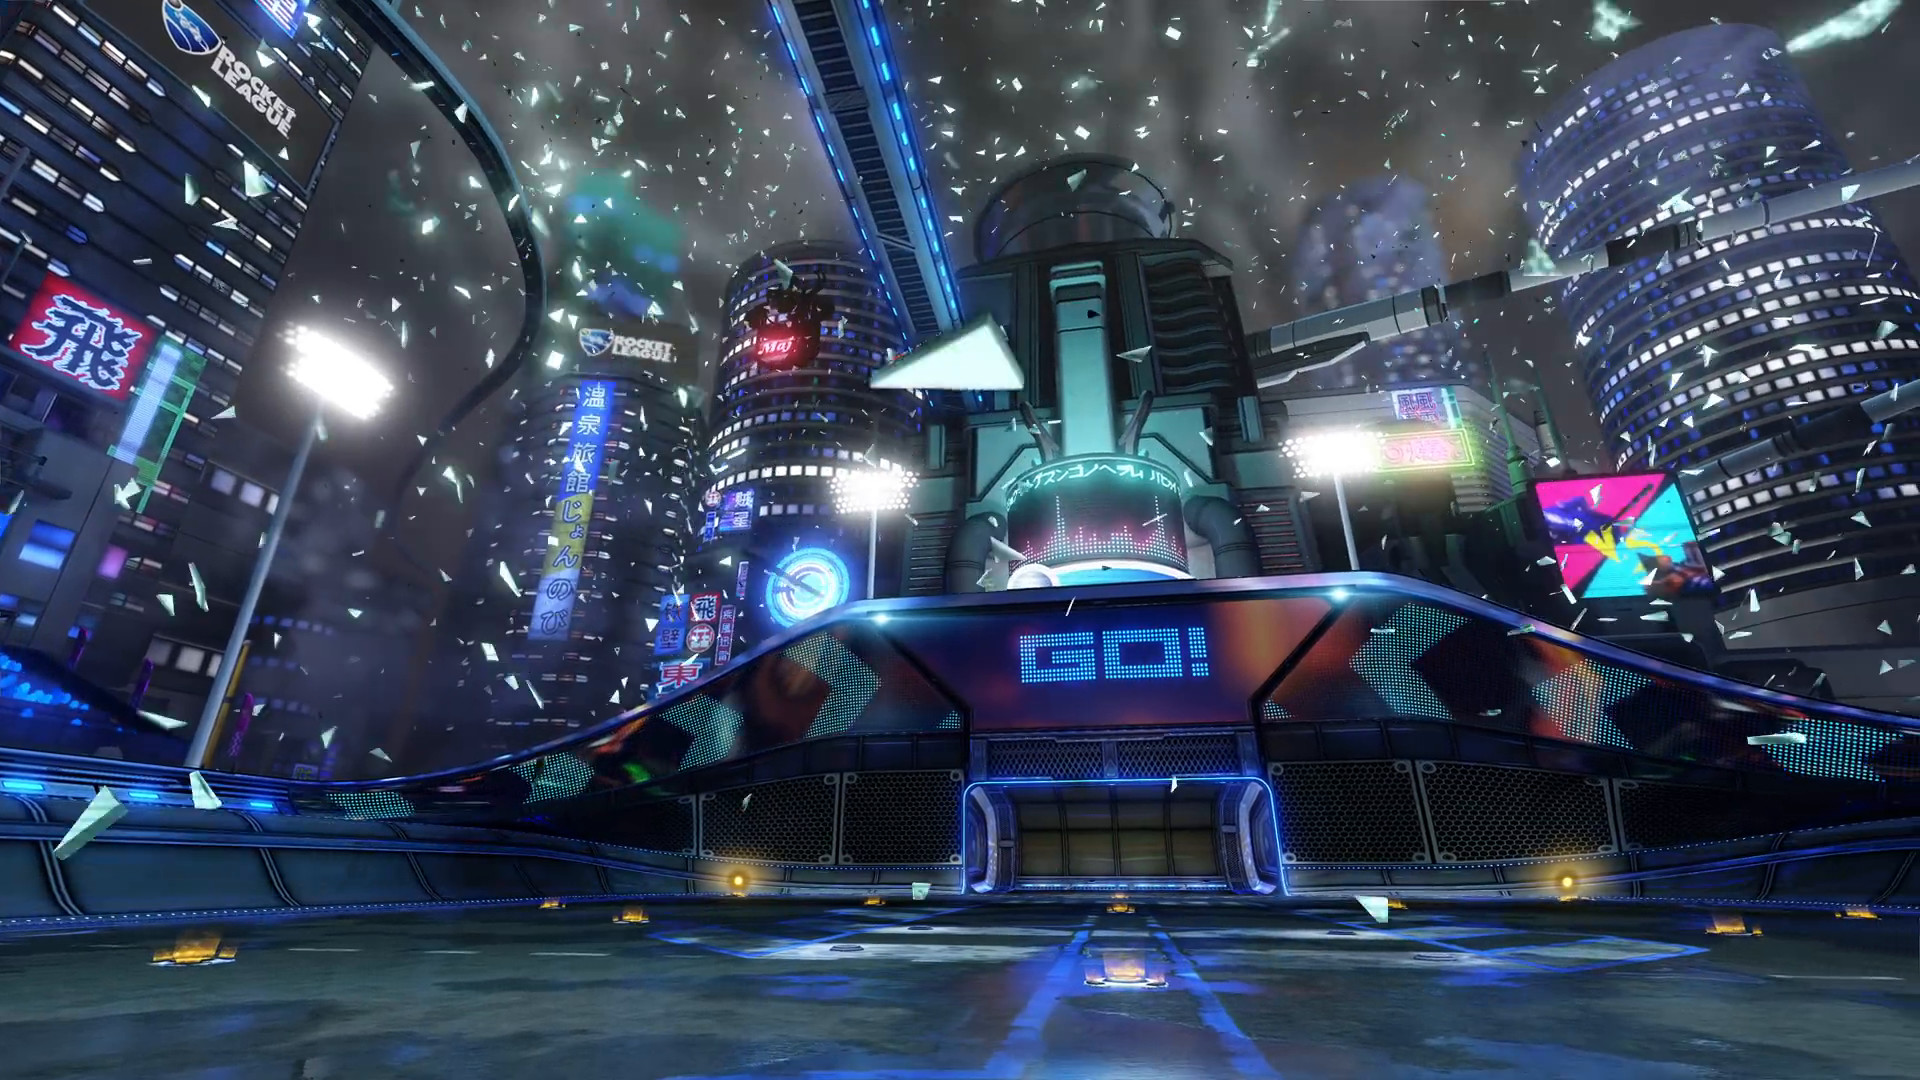 Res: 1920x1080, close share Rocket League's Neo Tokyo update is out now